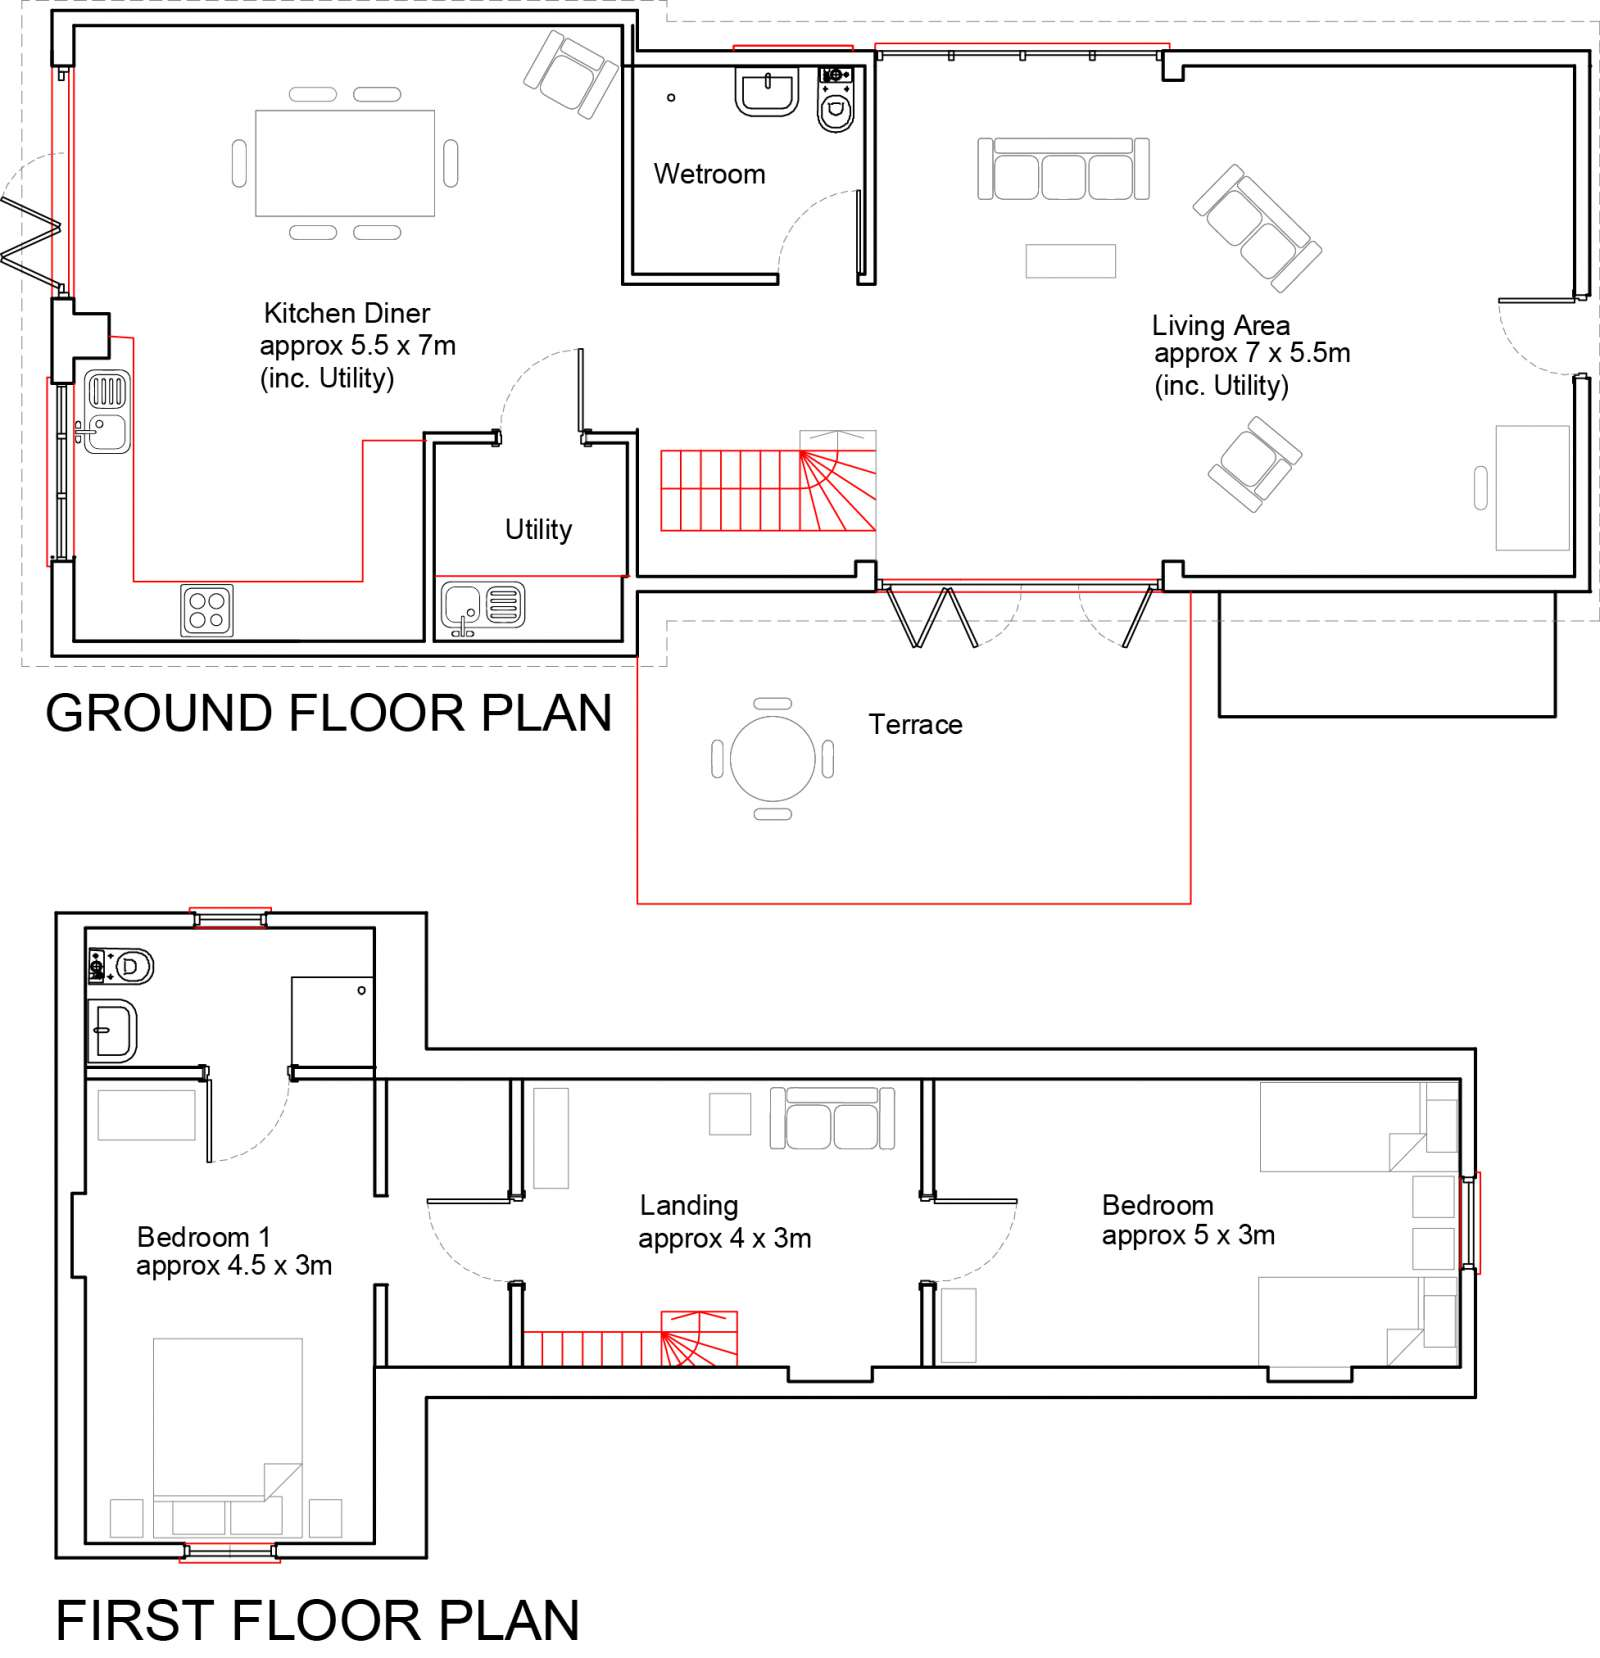 Holiday rental Cottage in Shorwell - The floor plan shows how spacious The Little Barn is.